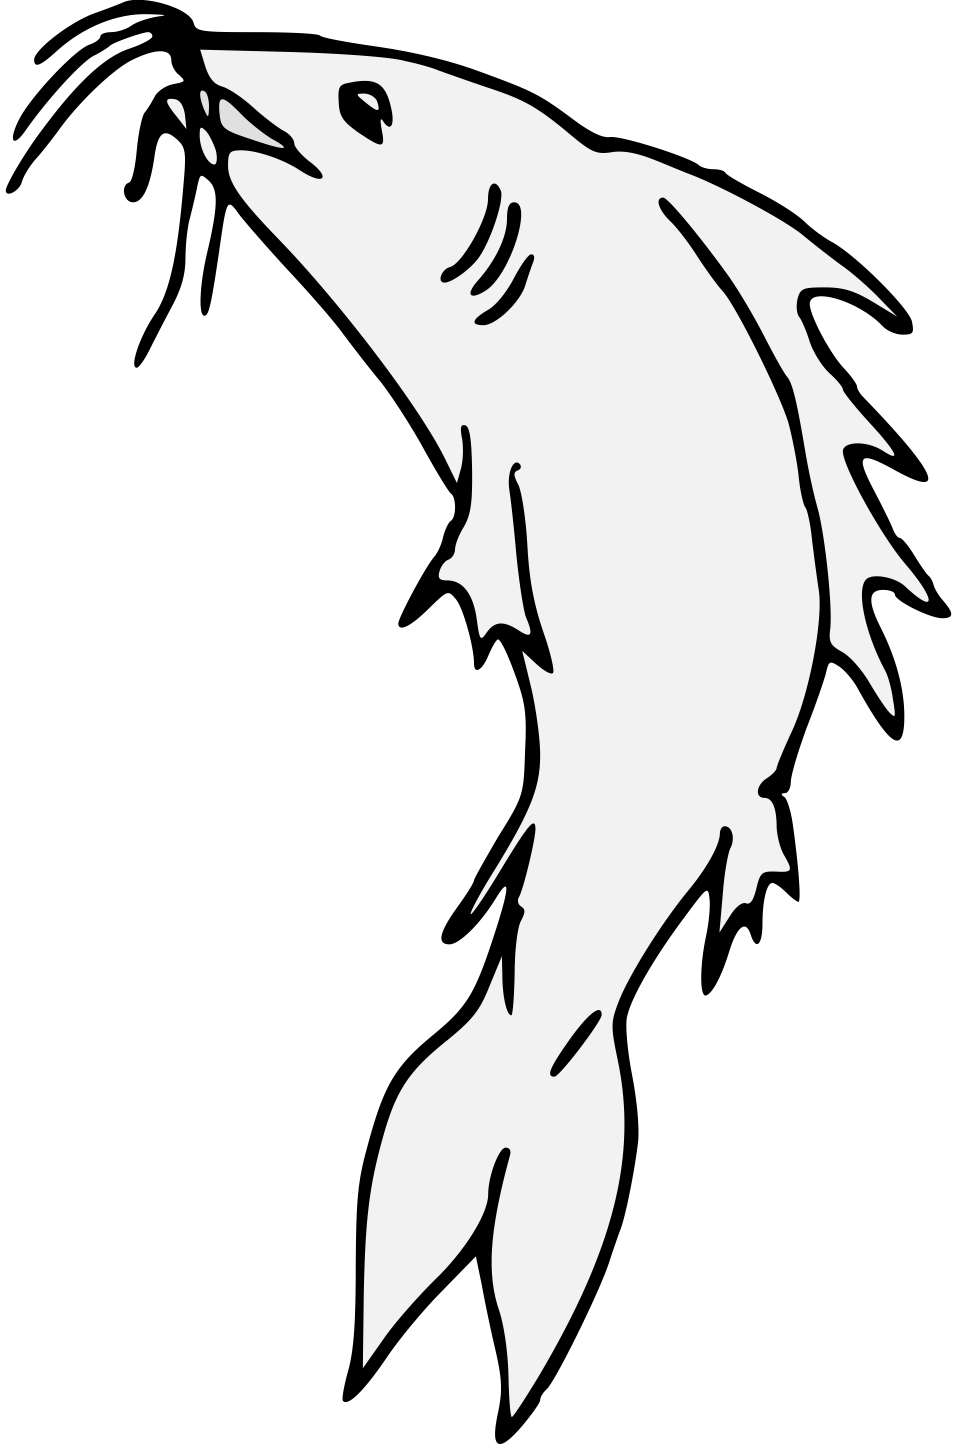 Cat fish clipart black and white clipart royalty free download Catfish Line Drawing at GetDrawings.com | Free for personal use ... clipart royalty free download